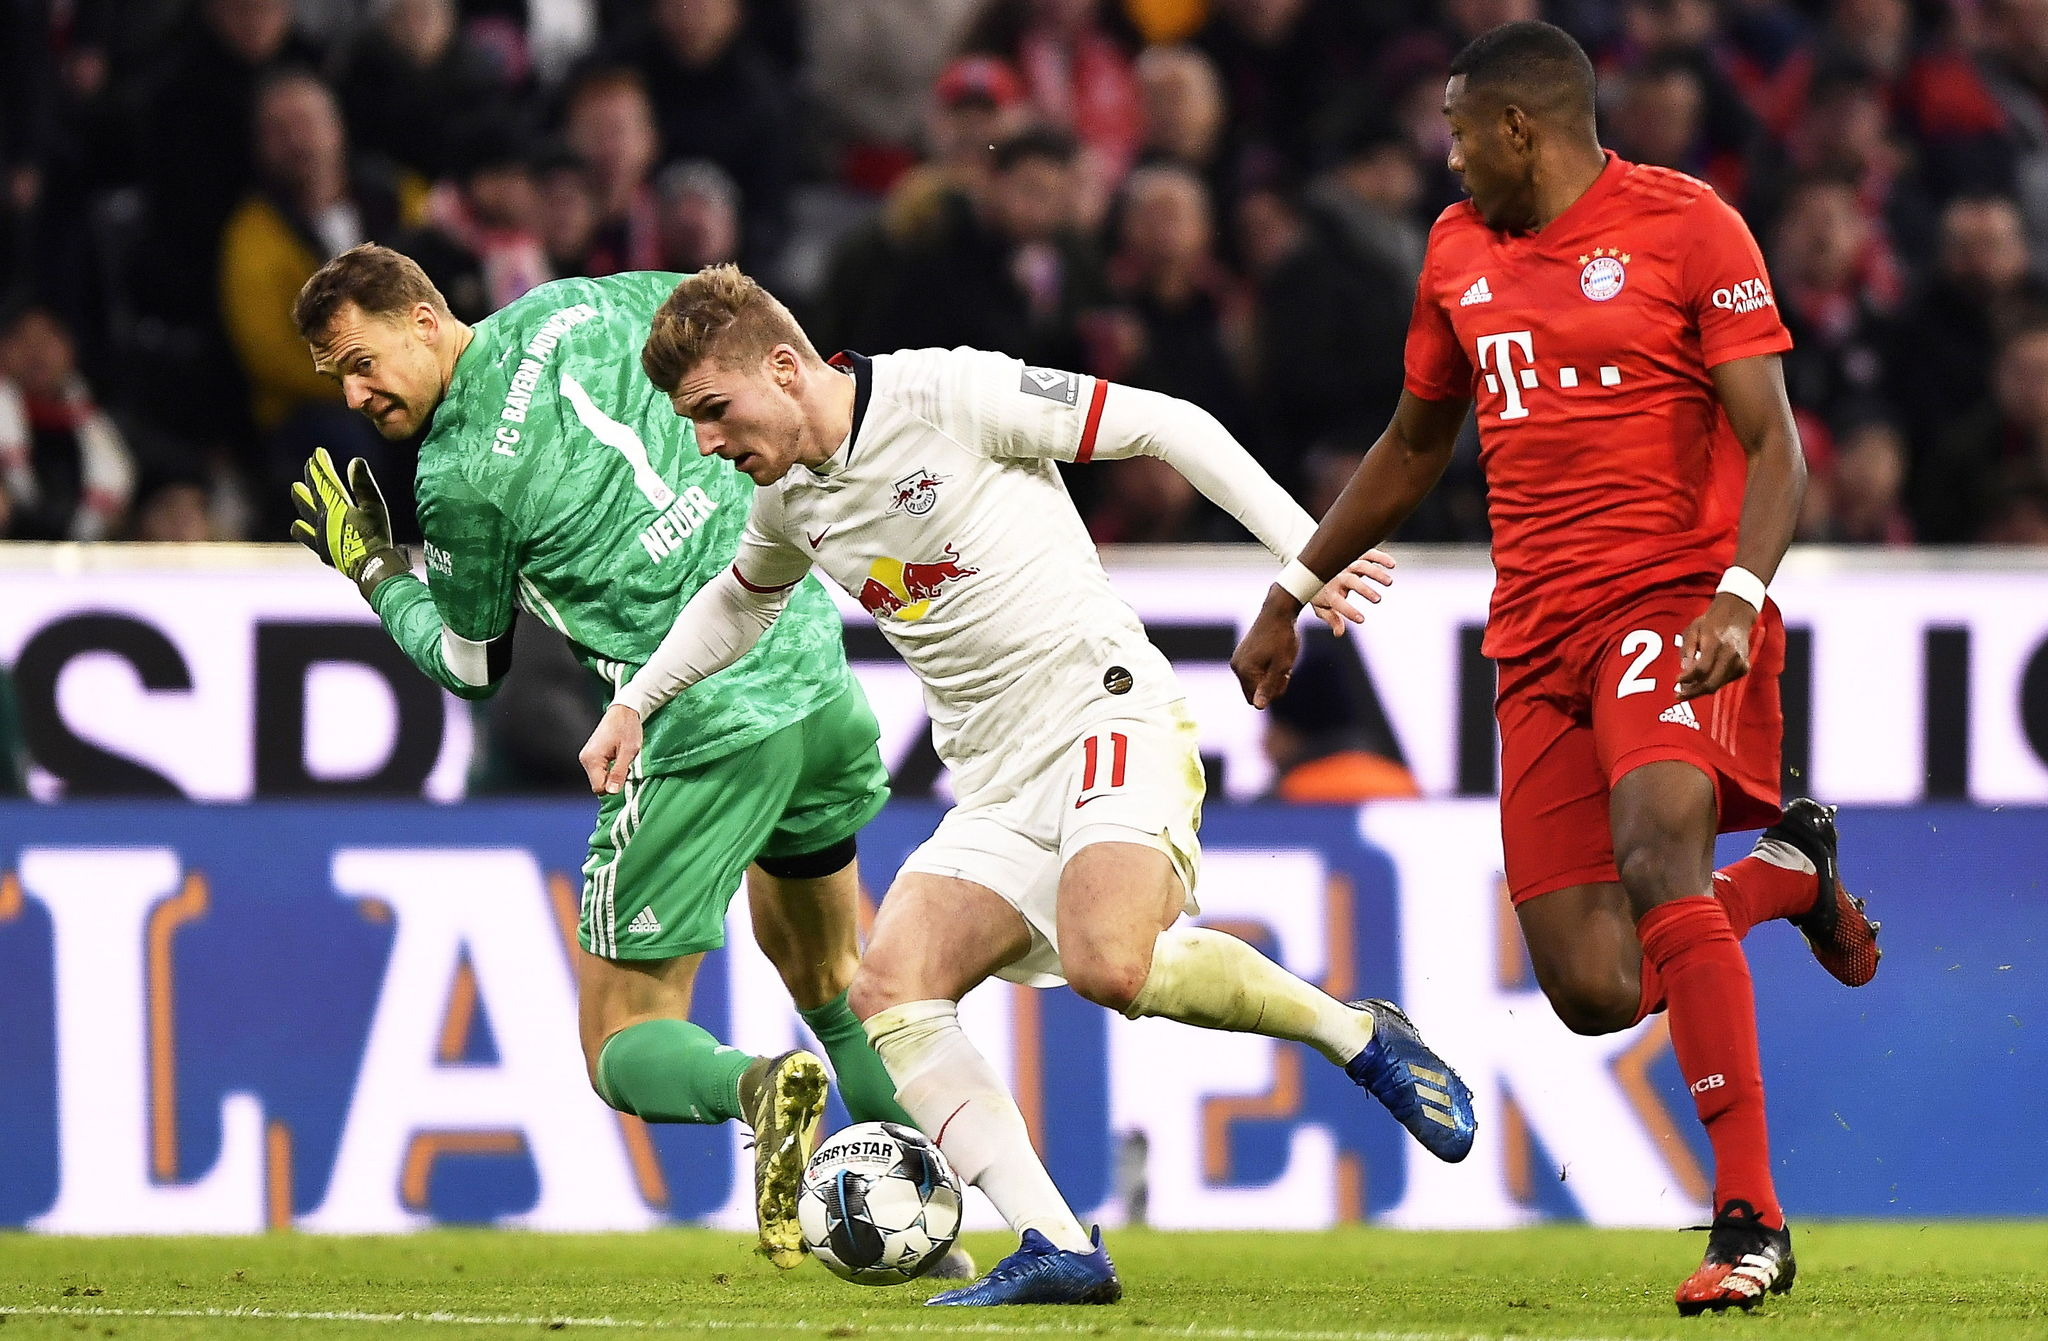 Munich (Germany), 09/02/2020.- Leipzigs Timo lt;HIT gt;Werner lt;/HIT gt; (C) in action against Bayern Munichs goalkeeper Manuel Neuer (L) and David Alaba (R) during the German Bundesliga soccer match between FC Bayern Munich and RB Leipzig in Munich, Germany, 09 February 2020. (Alemania) EFE/EPA/LUKAS BARTH-TUTTAS CONDITIONS - ATTENTION: The DFL regulations prohibit any use of photographs as image sequences and/or quasi-video